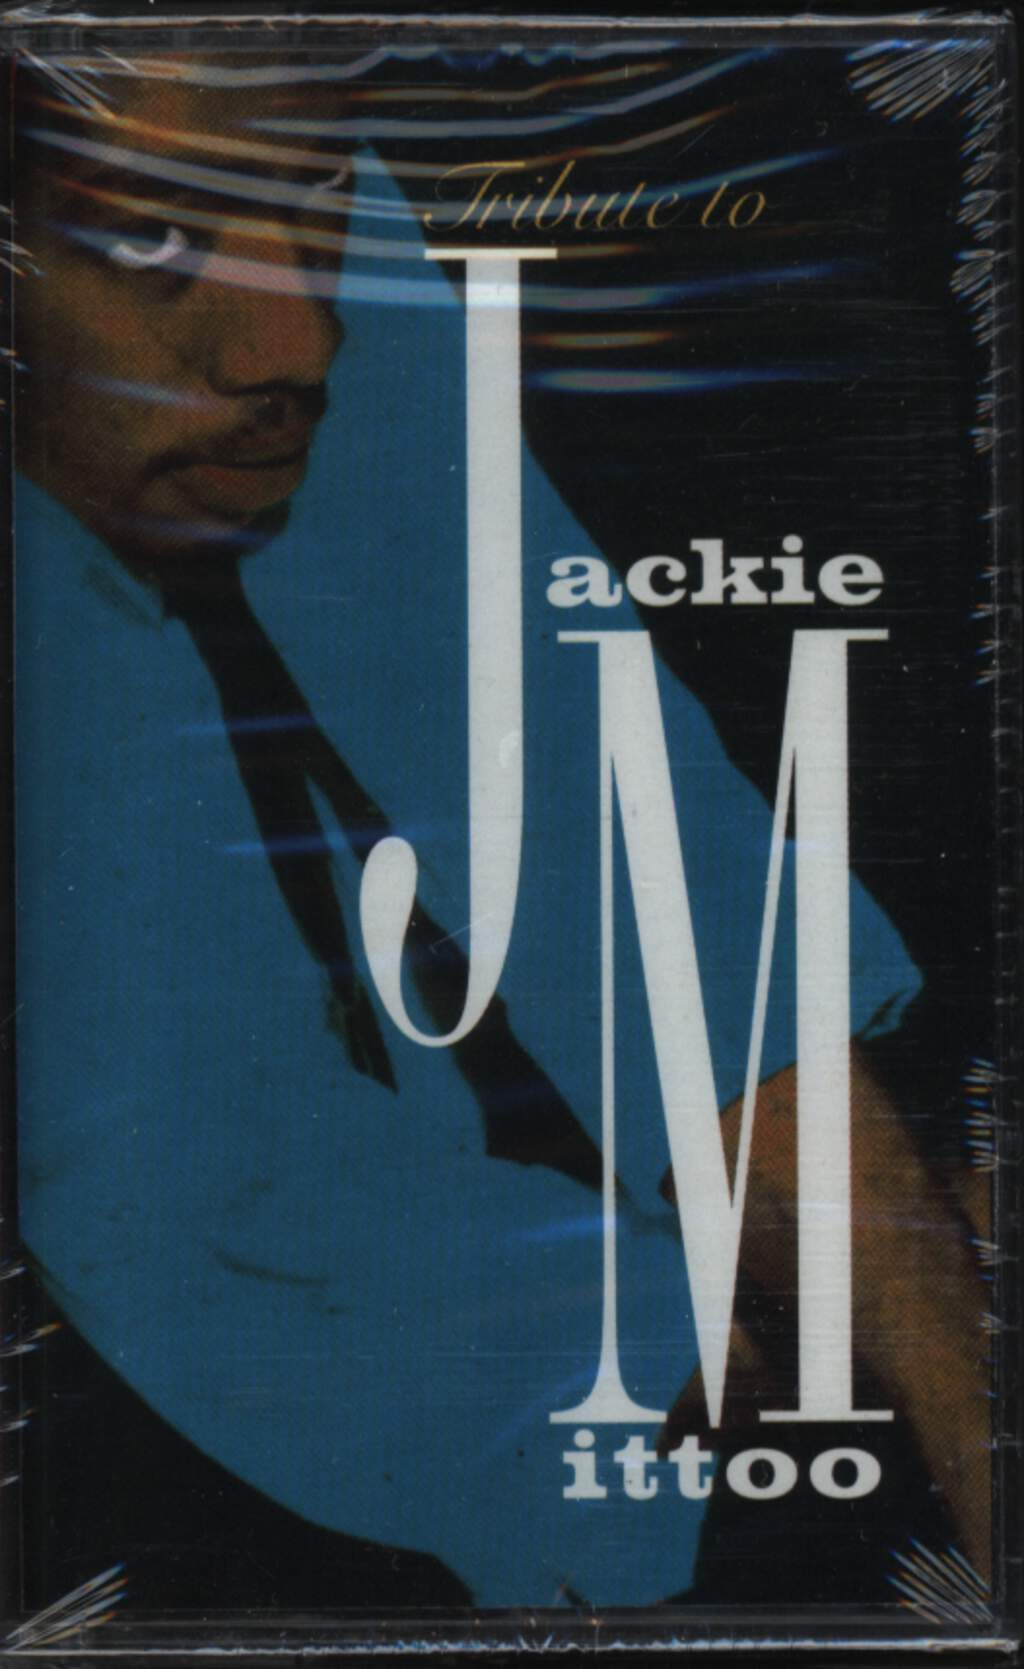 Jackie Mittoo: A Tribute To Jackie Mittoo, Compact Cassette